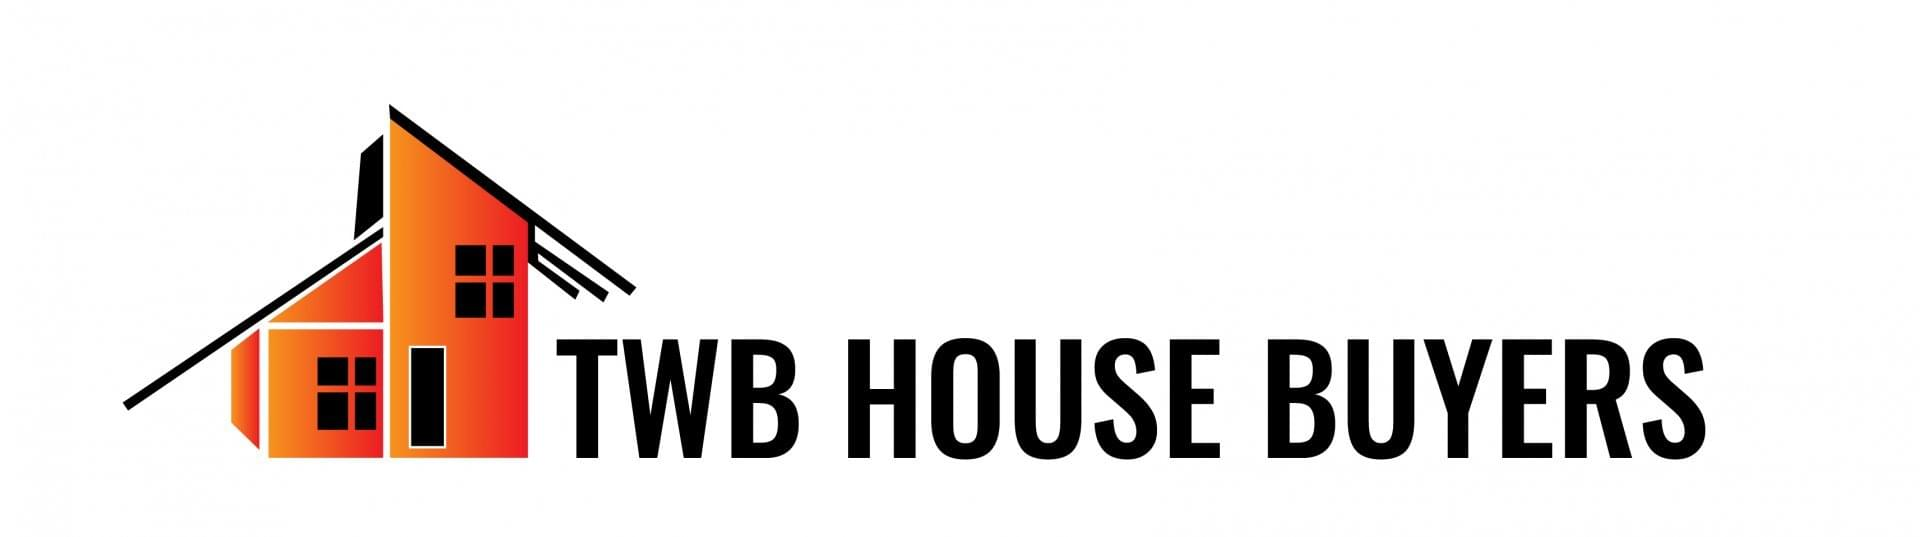 TWB House Buyers logo